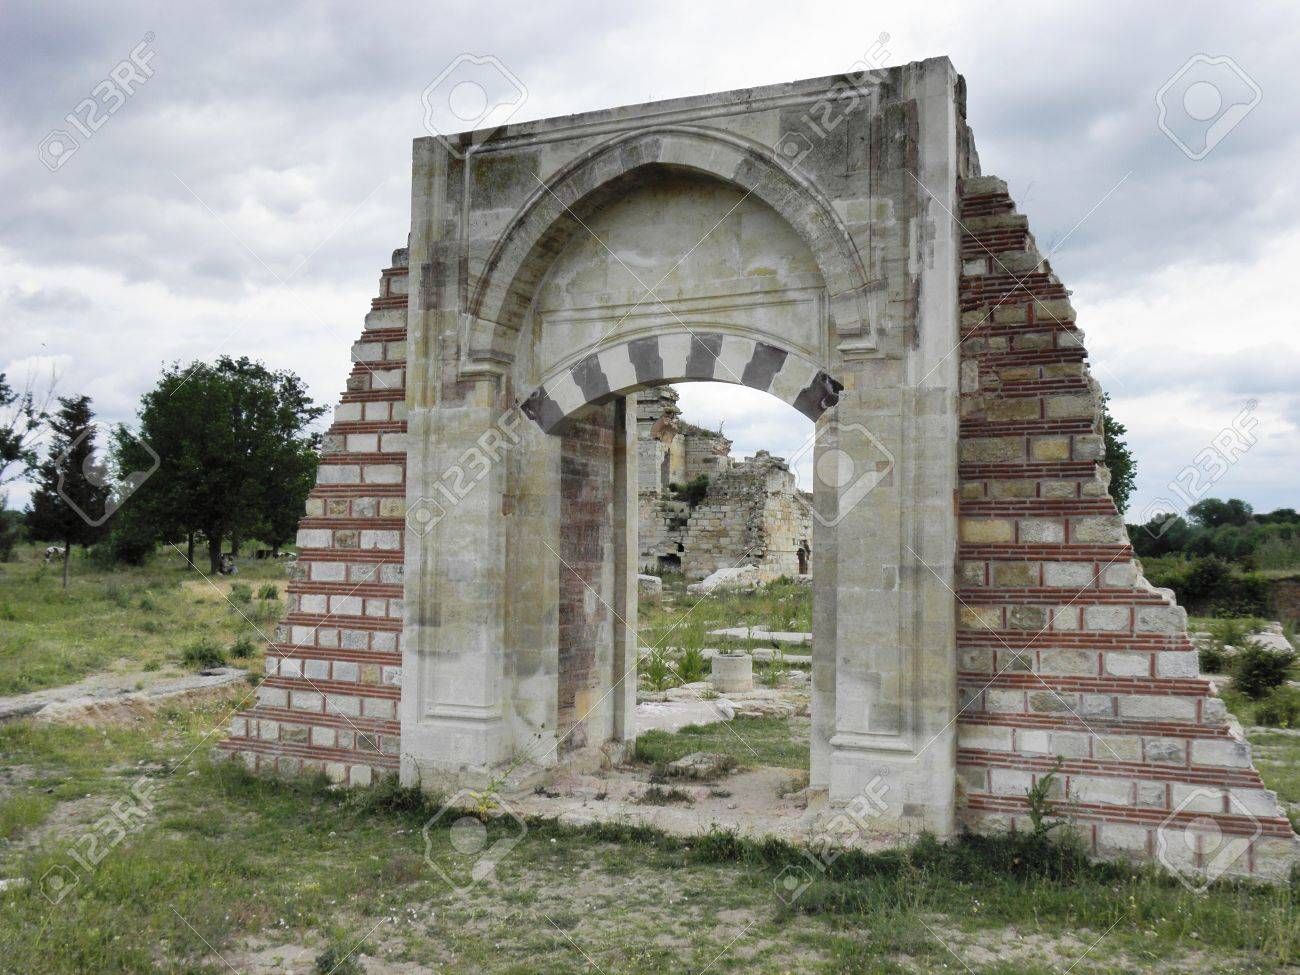 One of the gates of the palace of Mehmet the Conqueror in Edirne Stock Photo - 12603450